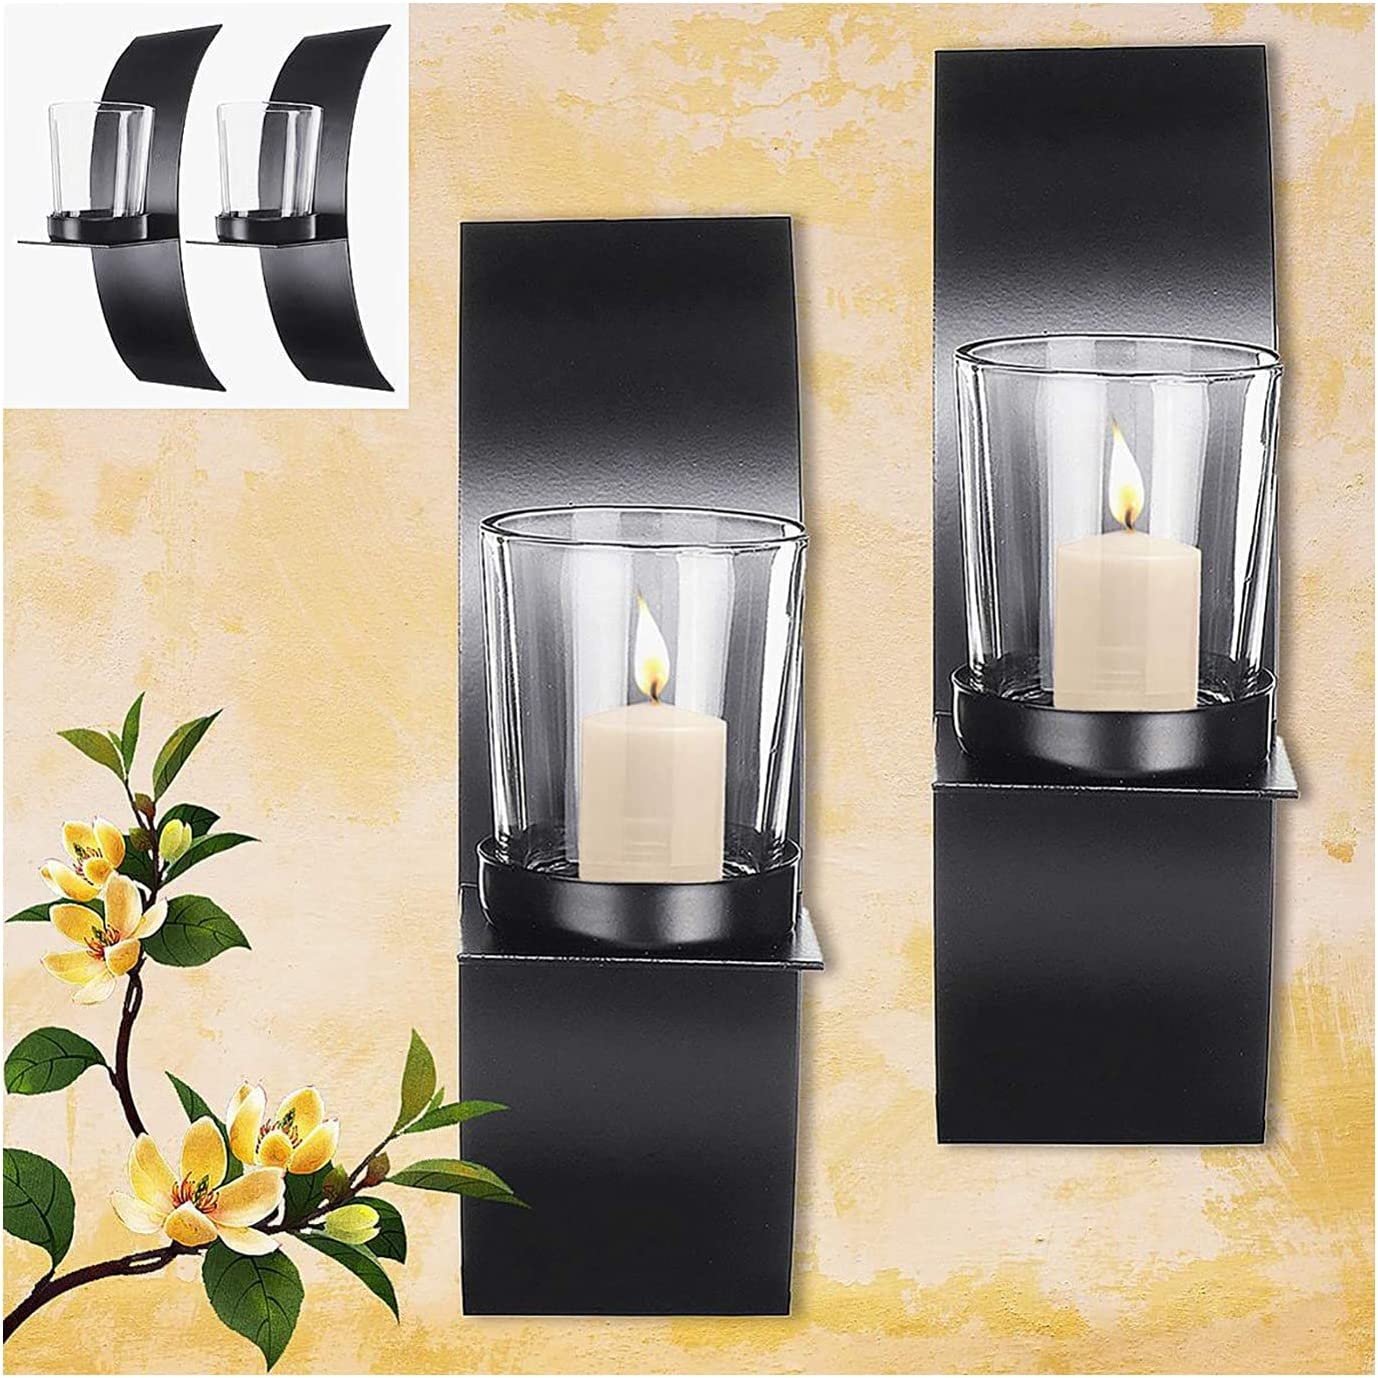 ZXCVBNM Candle Holder New item Wall Sconce Style 2Pcs Hanging safety Modern